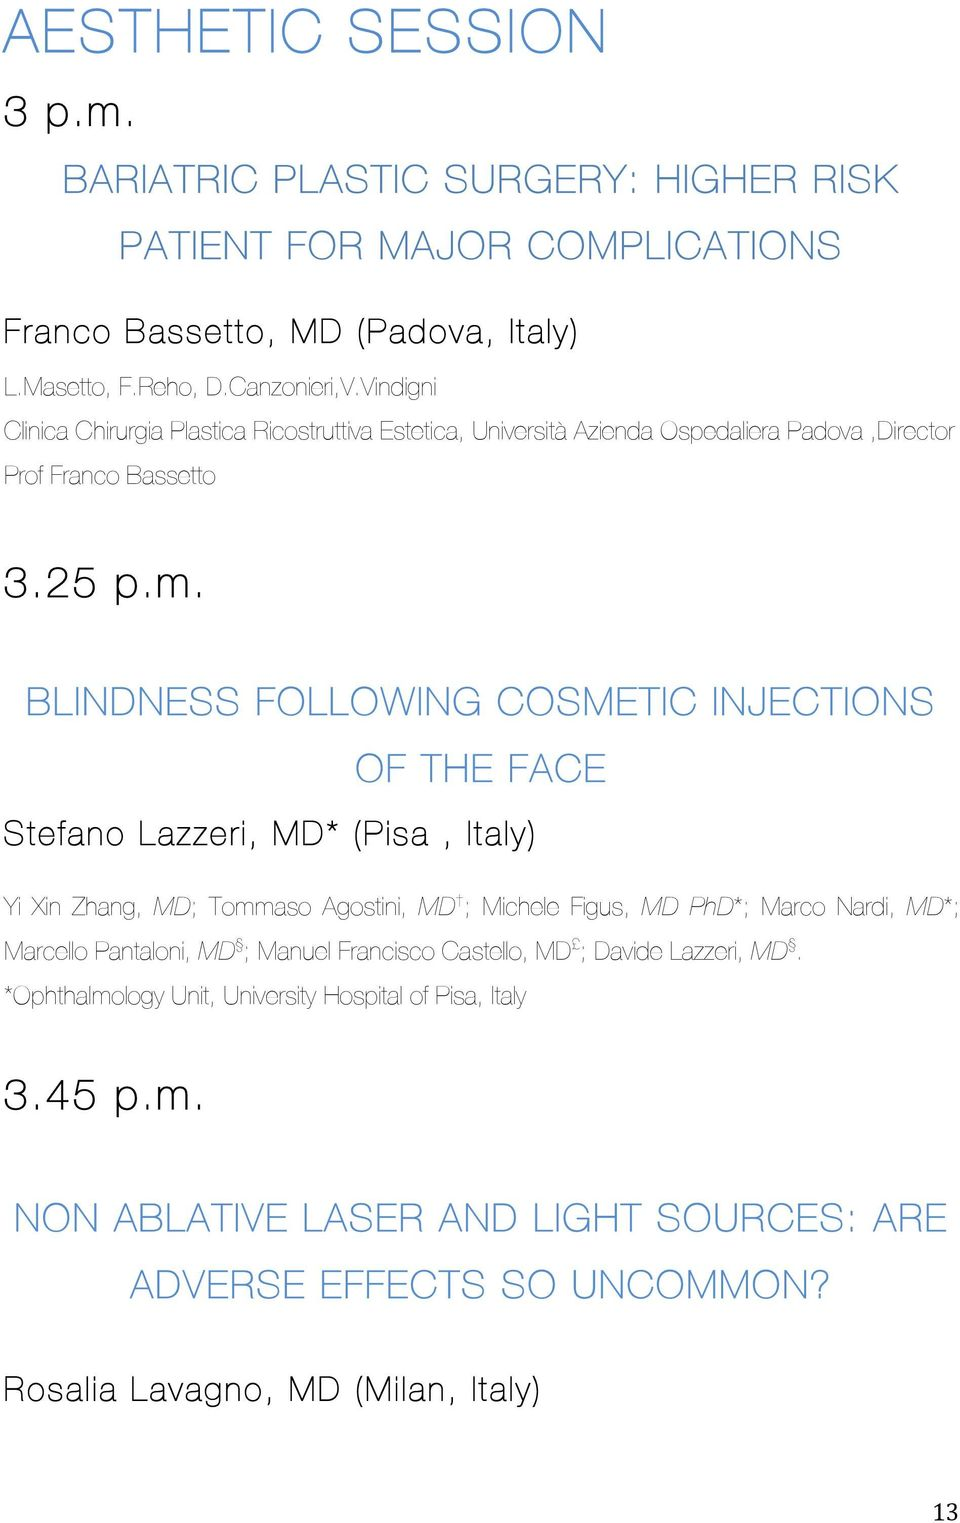 BLINDNESS FOLLOWING COSMETIC INJECTIONS OF THE FACE Stefano Lazzeri, MD* (Pisa, Italy) Yi Xin Zhang, MD; Tommaso Agostini, MD ; Michele Figus, MD PhD*; Marco Nardi, MD*; Marcello